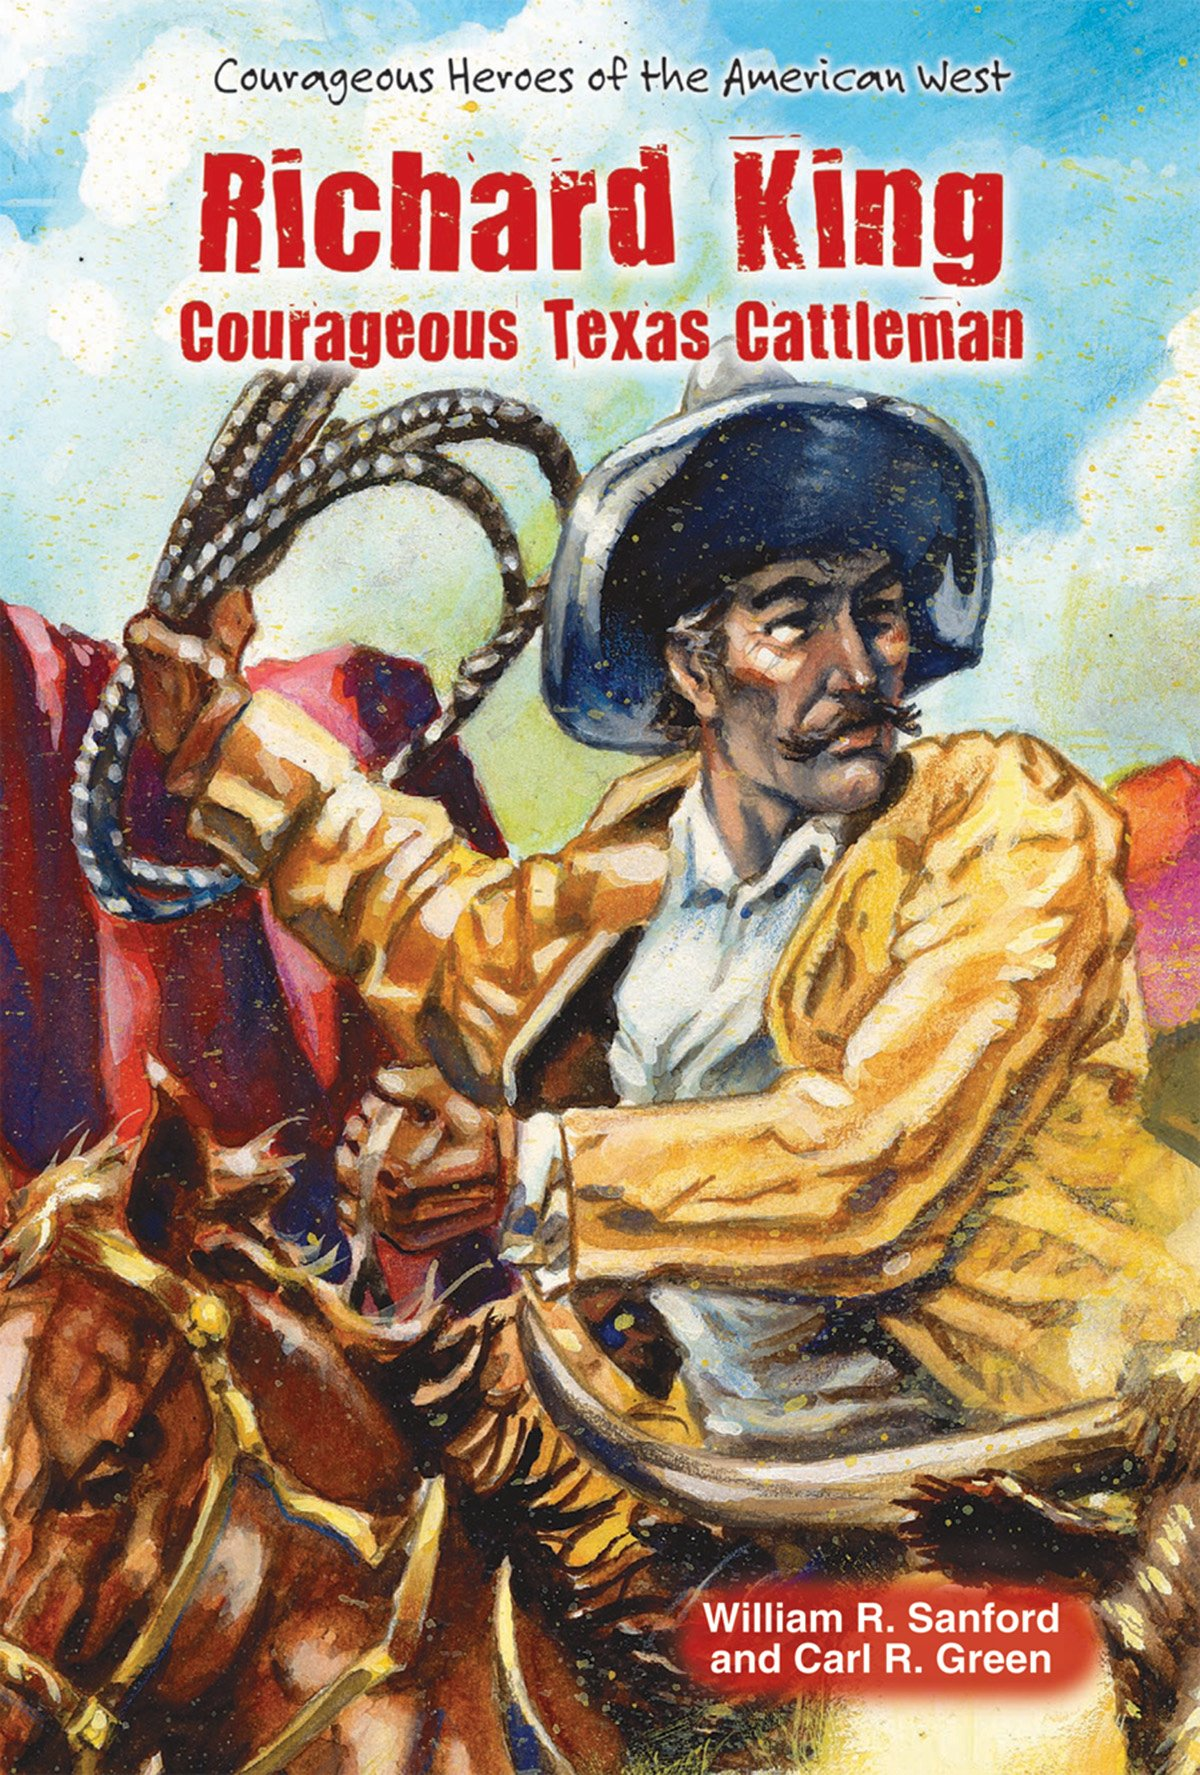 Richard King: Courageous Texas Cattleman (Courageous Heroes of the American West)